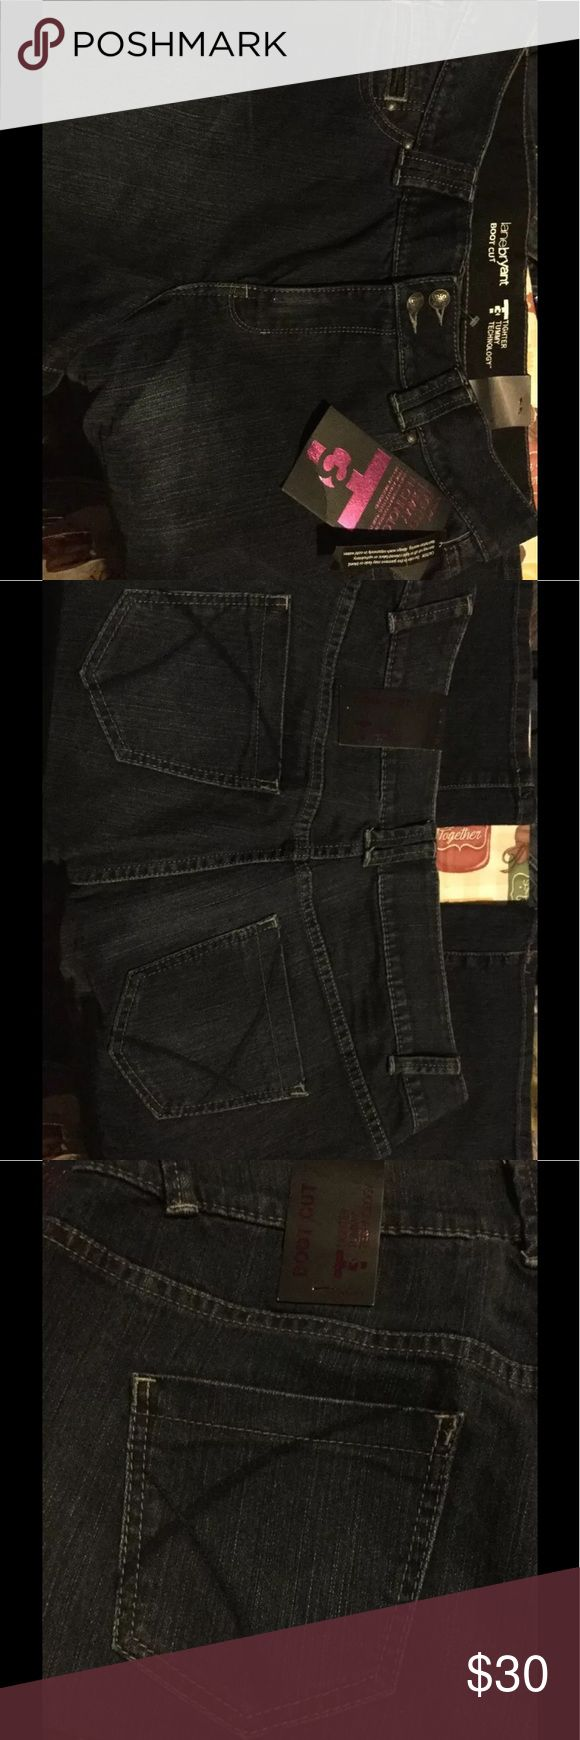 Tummy Tuck Bootcut 38W 32L Jeans New With Tags Lane Bryant Tummy Tuck Bootcut Ladies Size 16 38W 32L Jeans New With Tags🎉🎉🎉Host Pick 🎉🎉🎉excellent style and value Lane Bryant Jeans Boot Cut